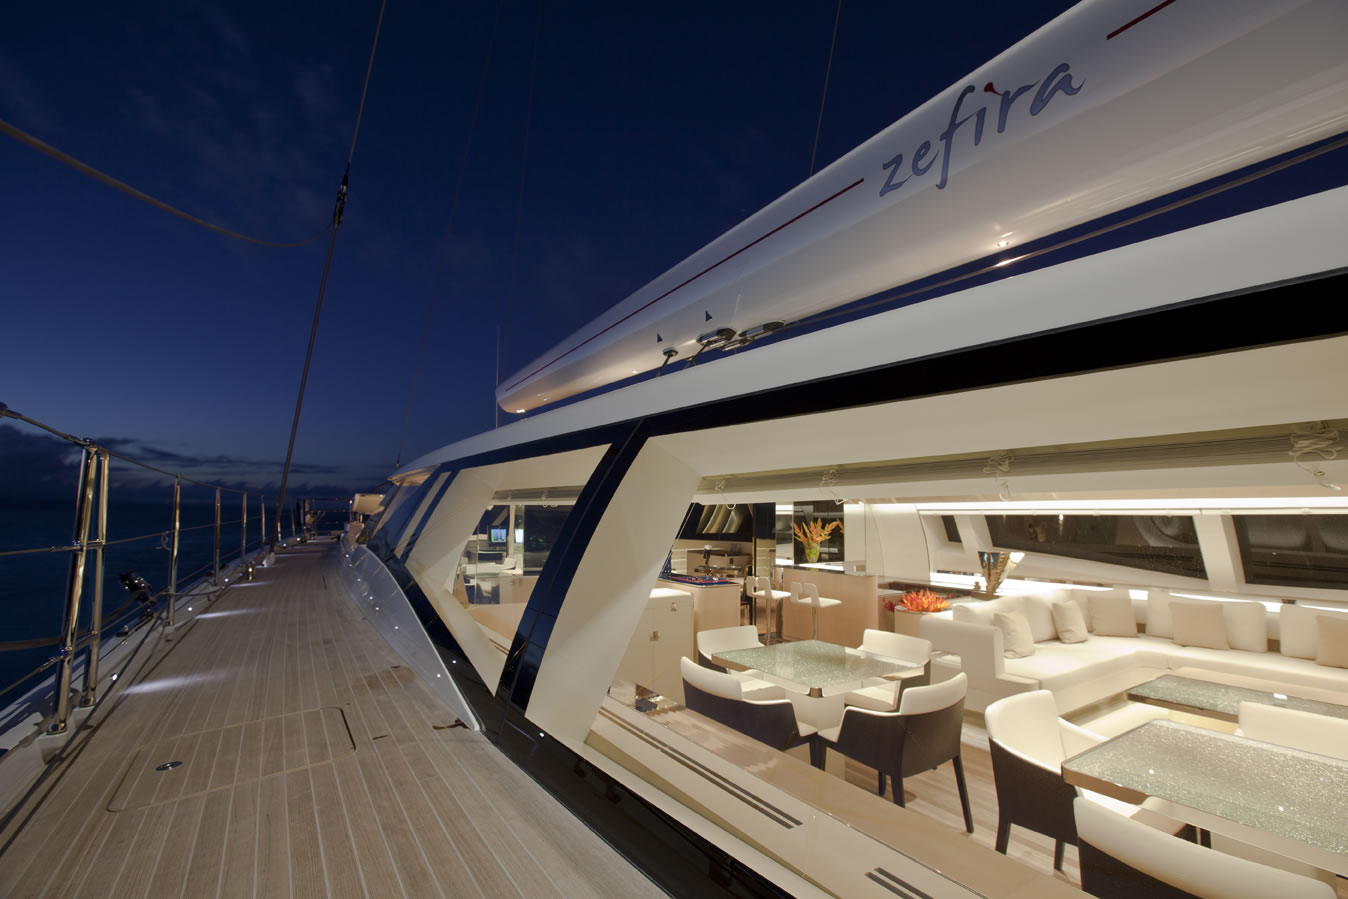 Sailing Yacht Zefira Looking In 2